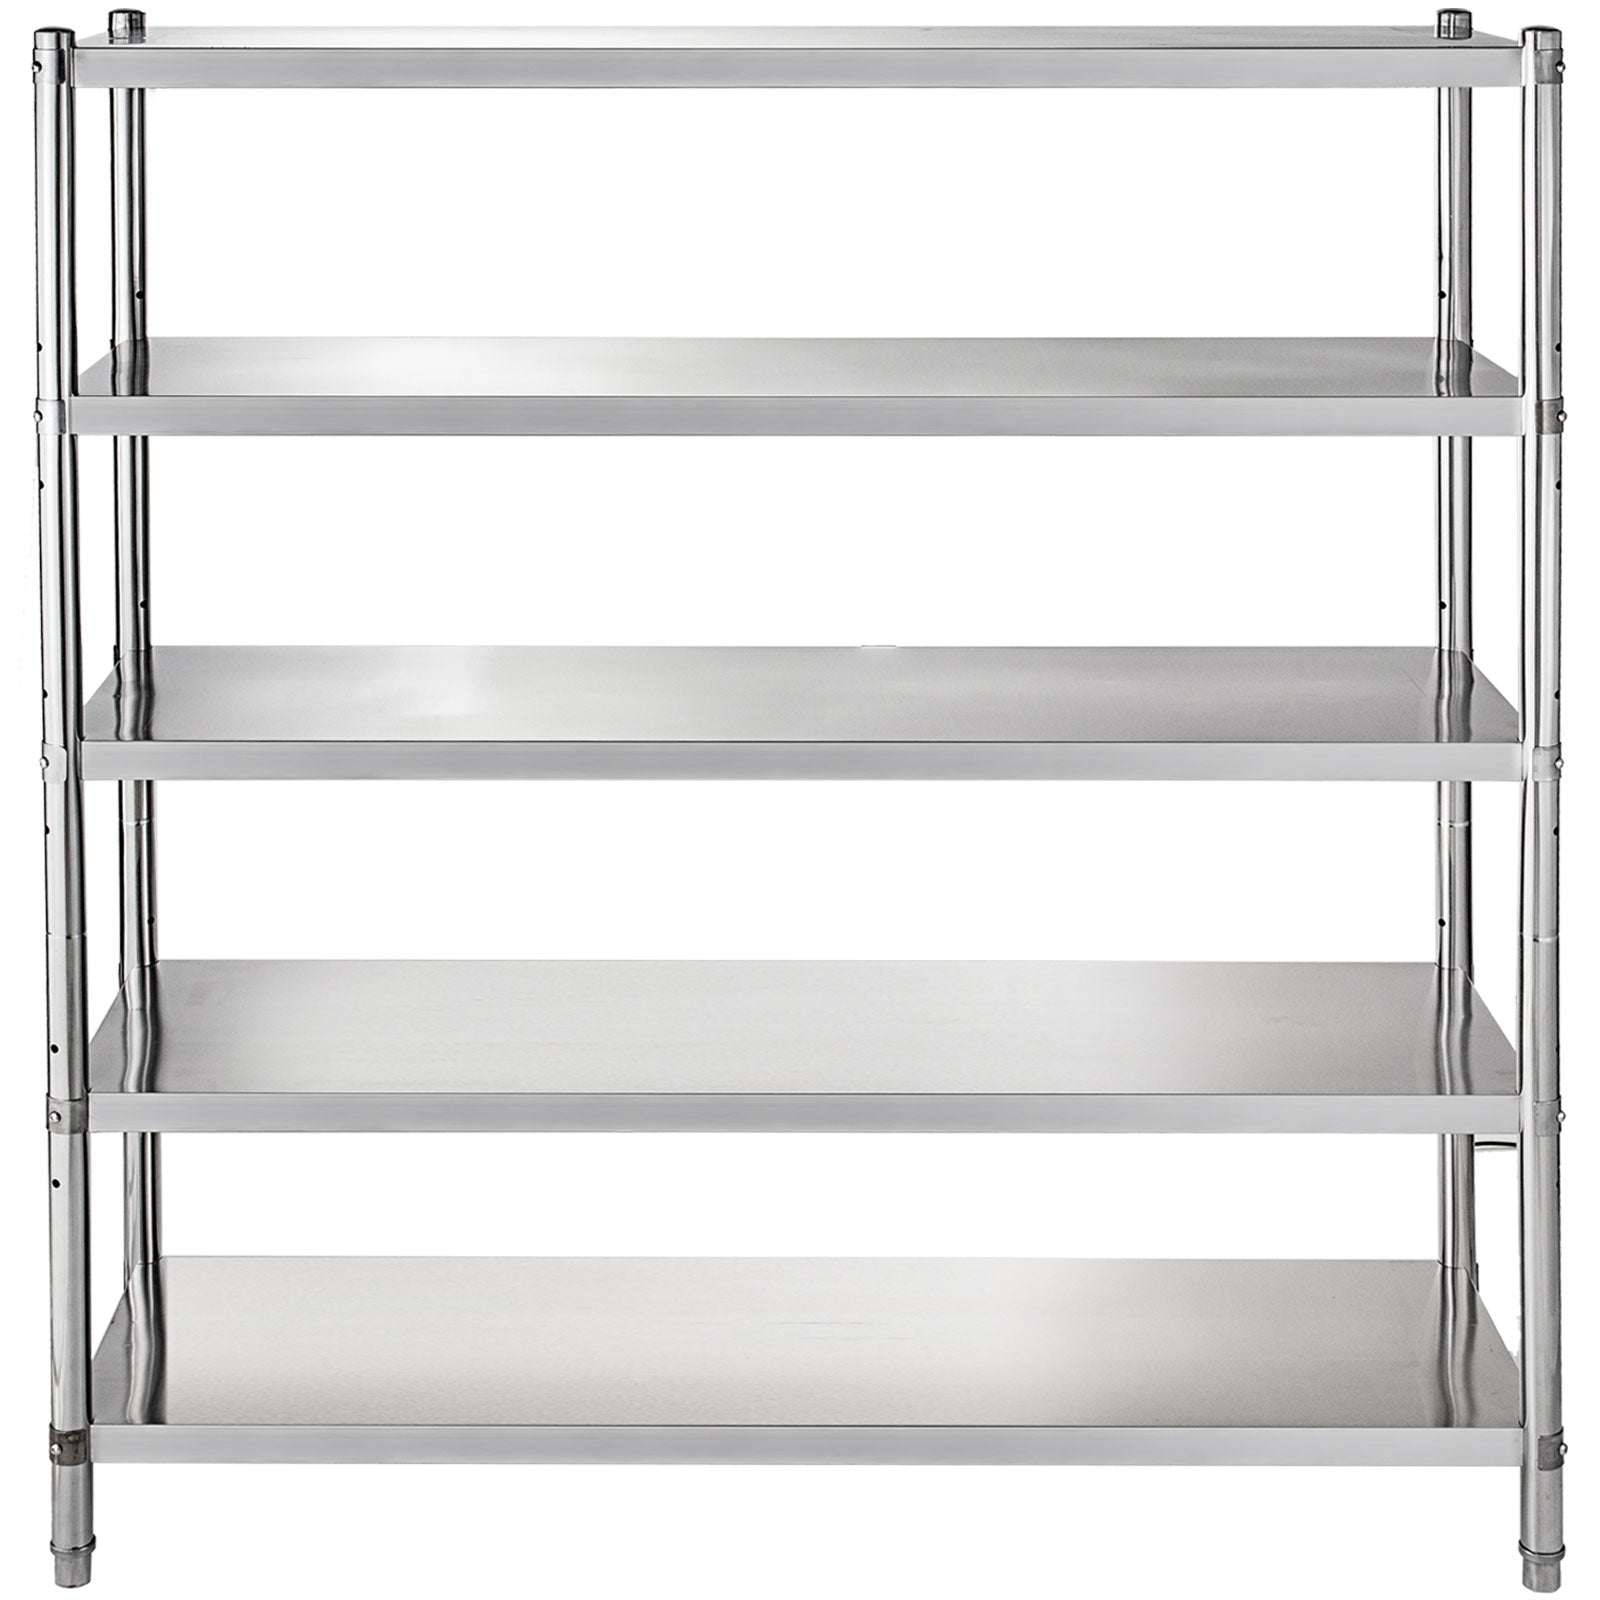 Kitchen Shelves Shelf Rack Stainless Steel Shelving Organizer Units 48*72 Inch